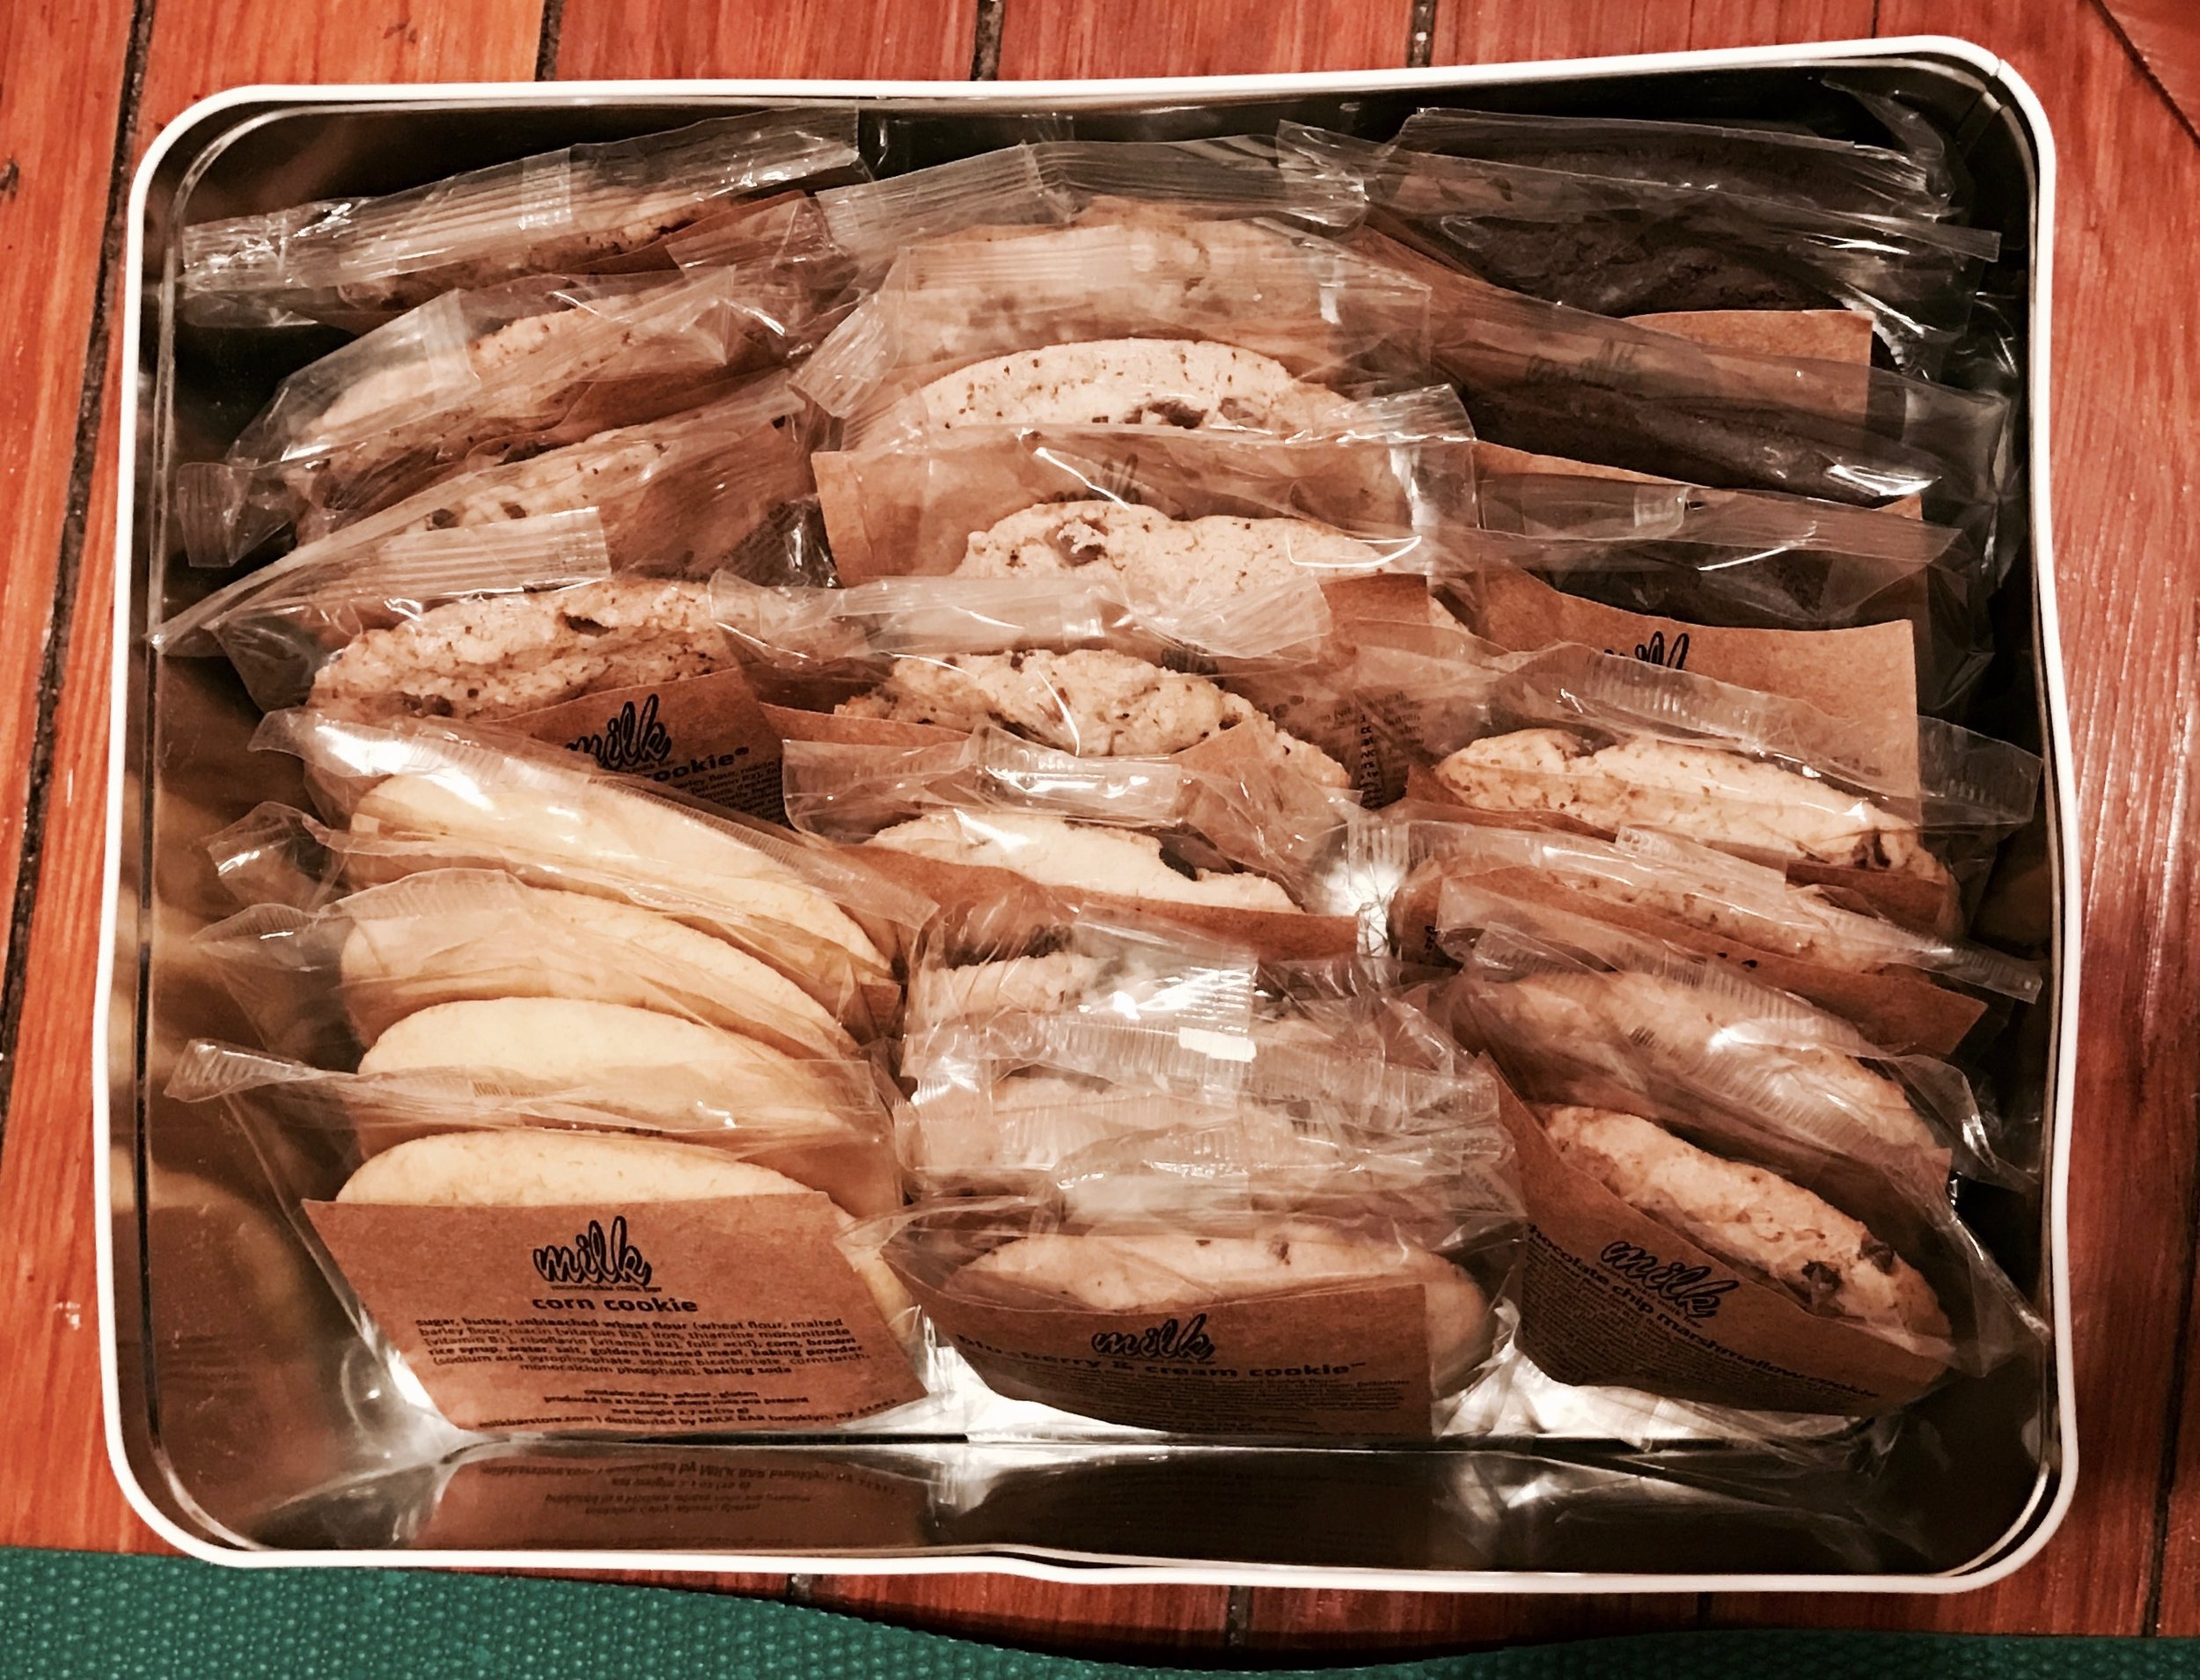 Look at all those cookies! (image via zoesessums)